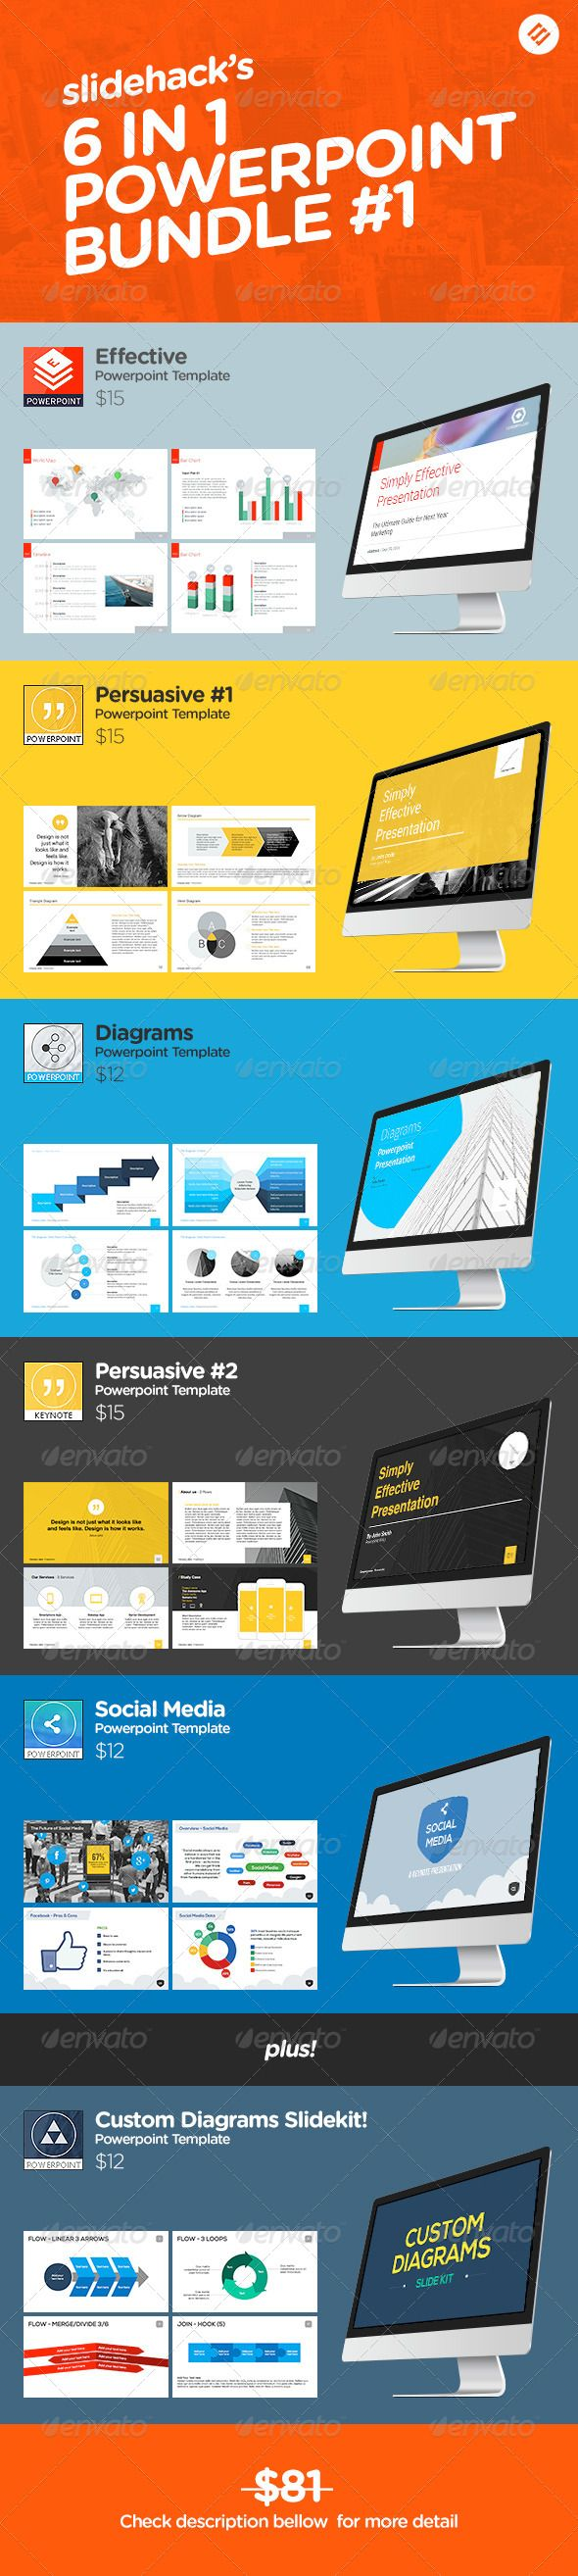 layout for powerpoint presentation